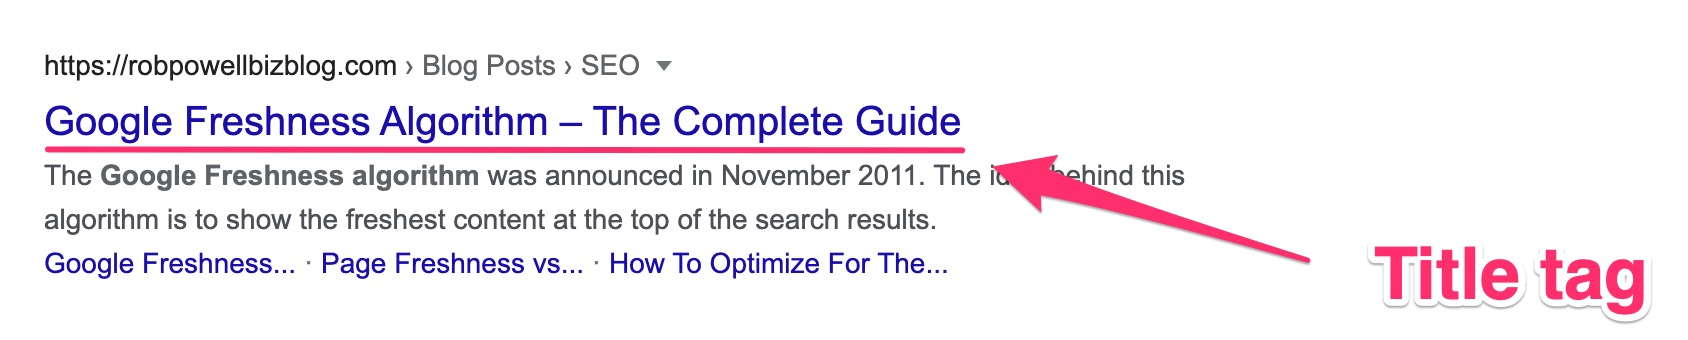 the title tag is a clickable link in the SERP snippet